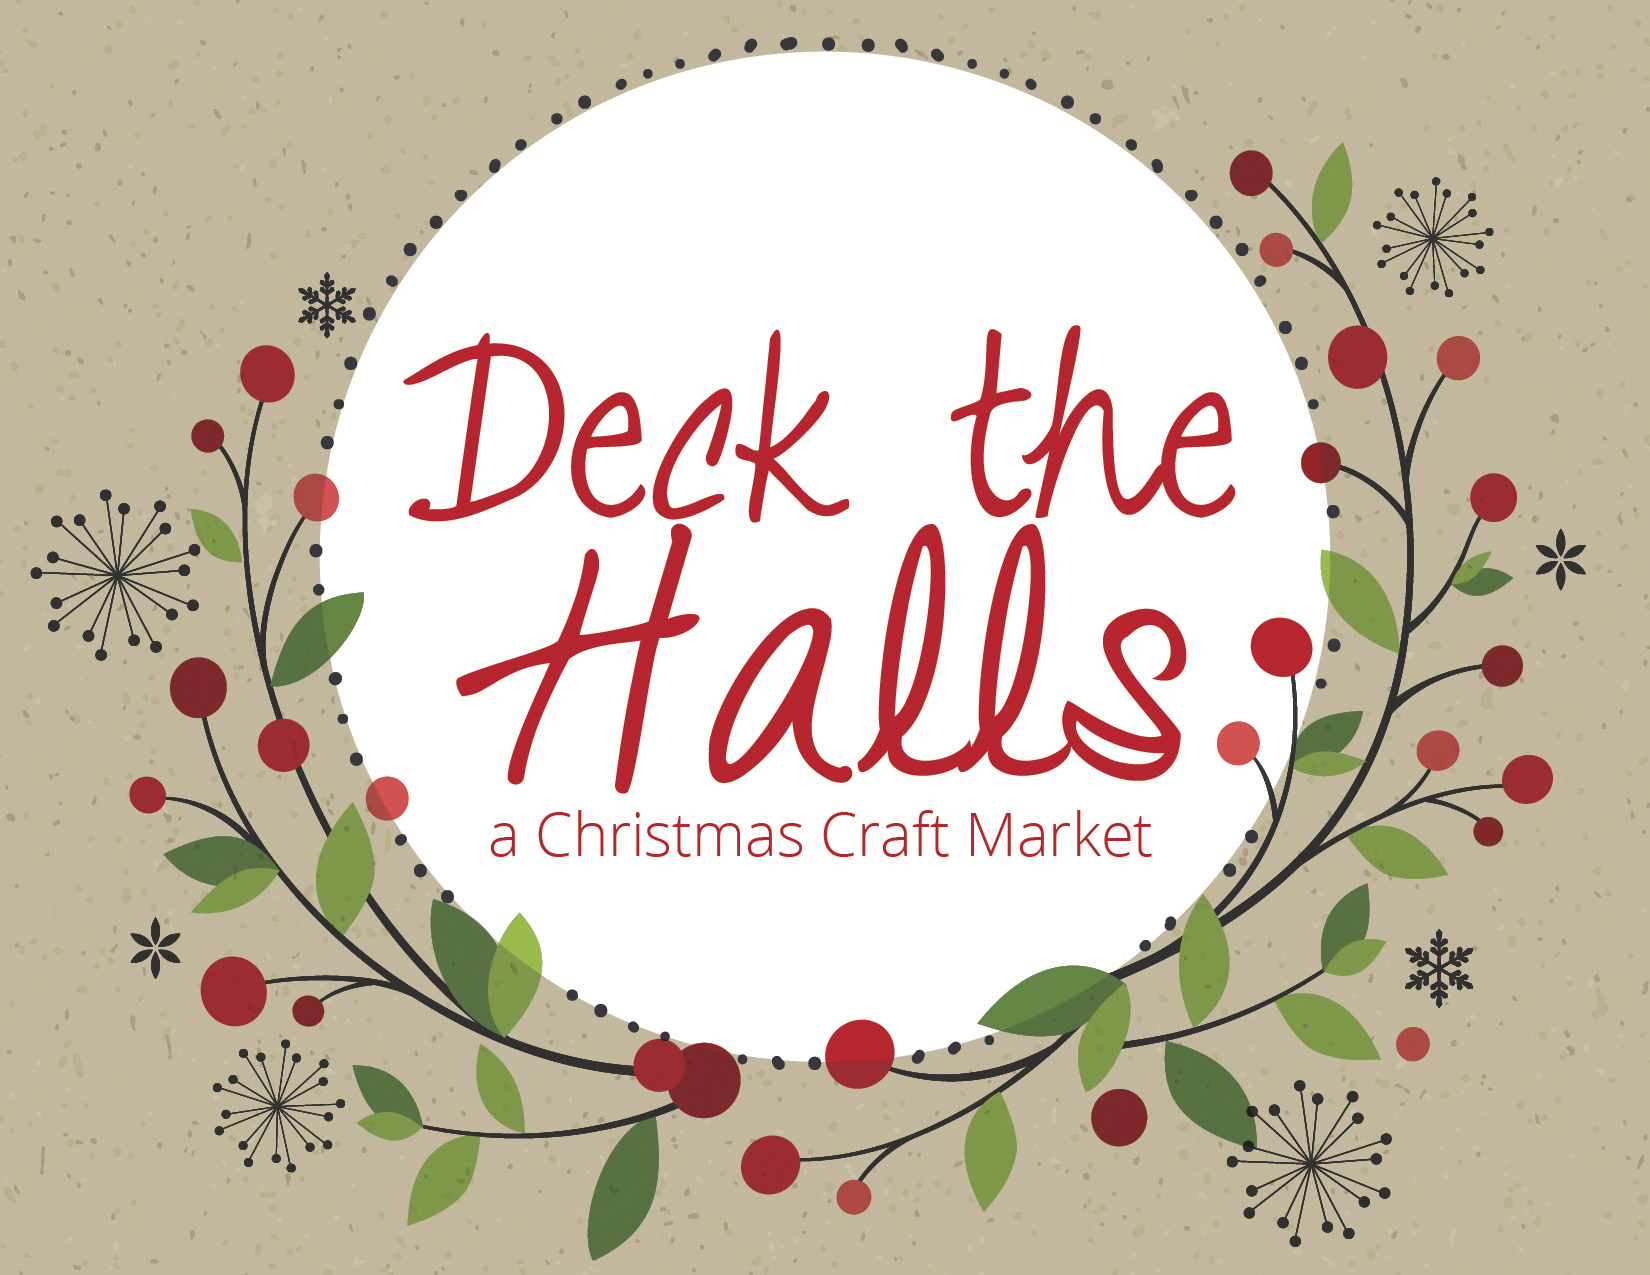 Event: Deck The Halls, A Christmas Craft Market